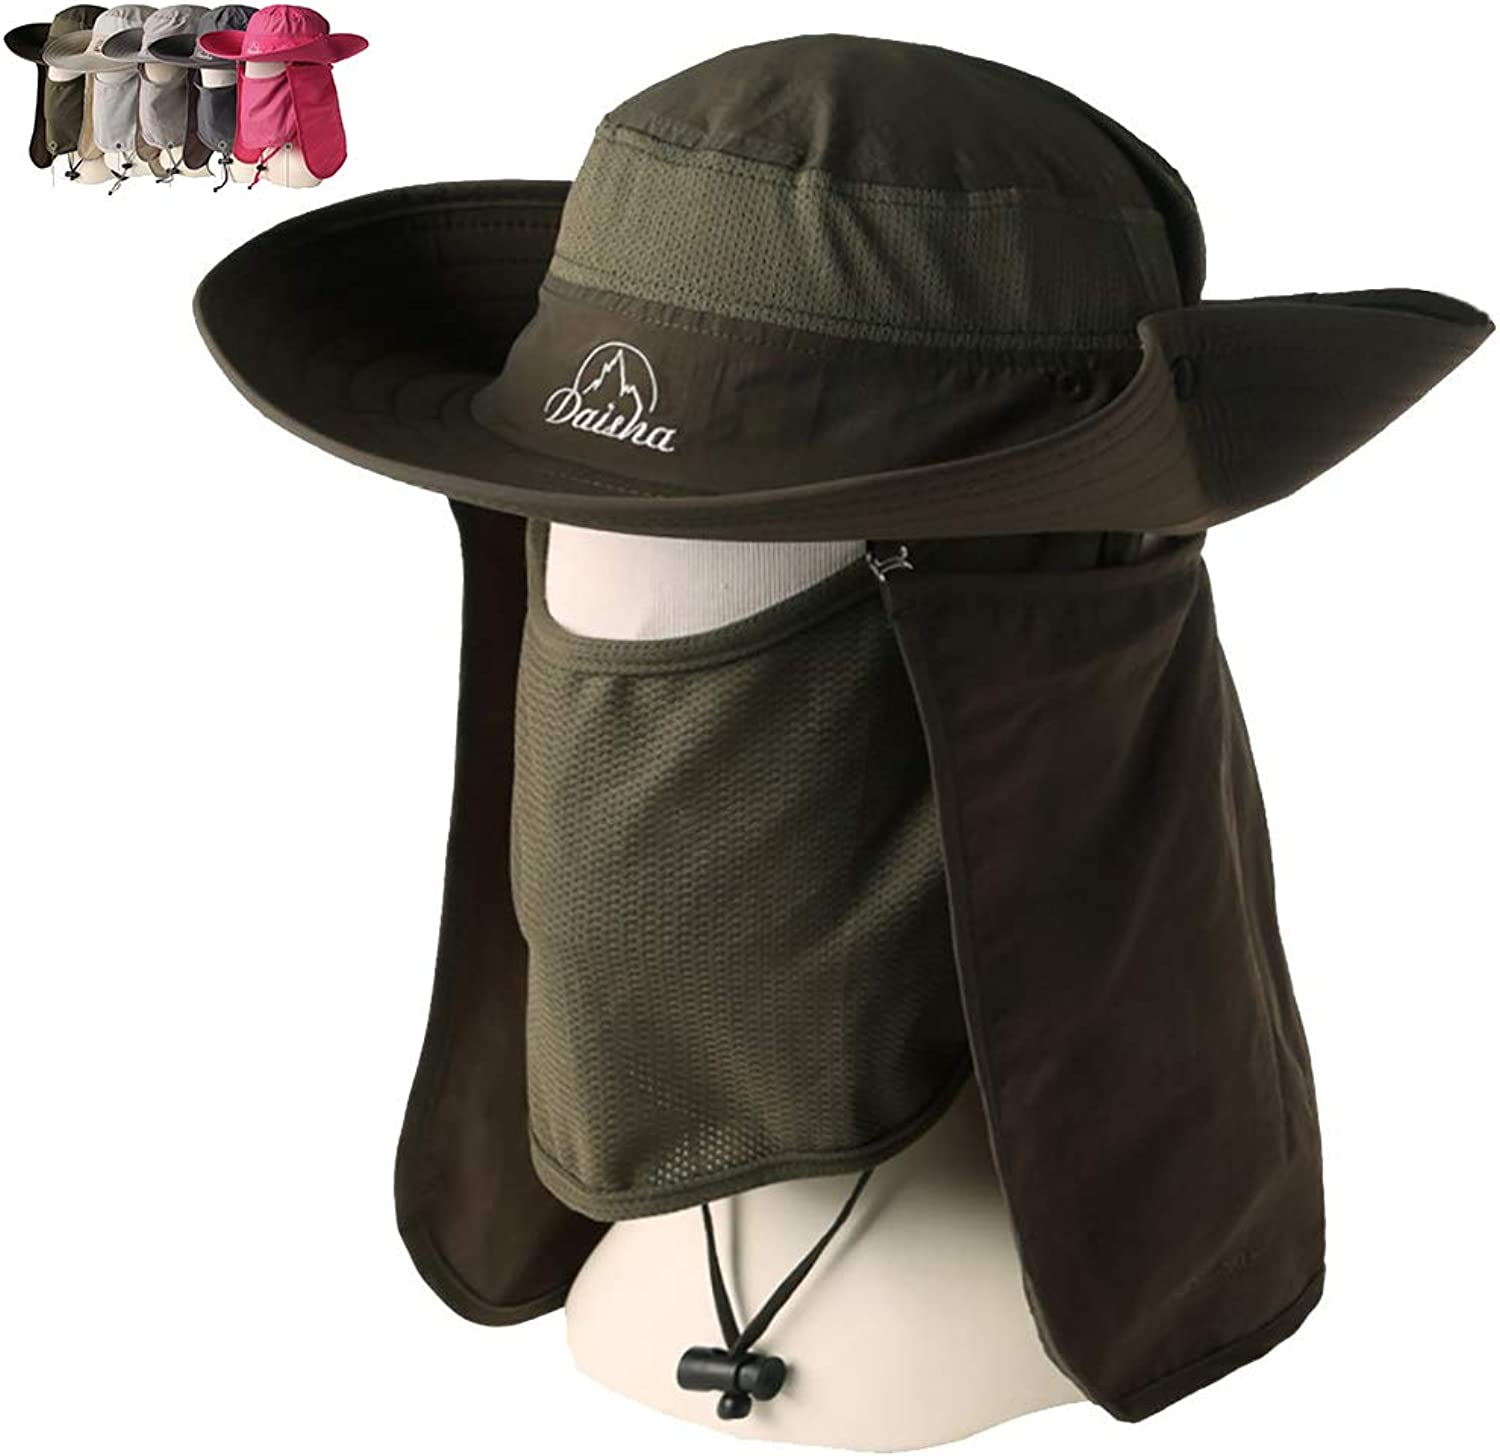 Peicees Wide Brim Fishing Hat, UV Sun Predection UPF50+ Shade Hat, Detachable Removable Neck&Face Flap Cover Hat Cowboy Hat for Men & Women, Backpacking Cycling Hiking Garden Hunting Outdoors Camping